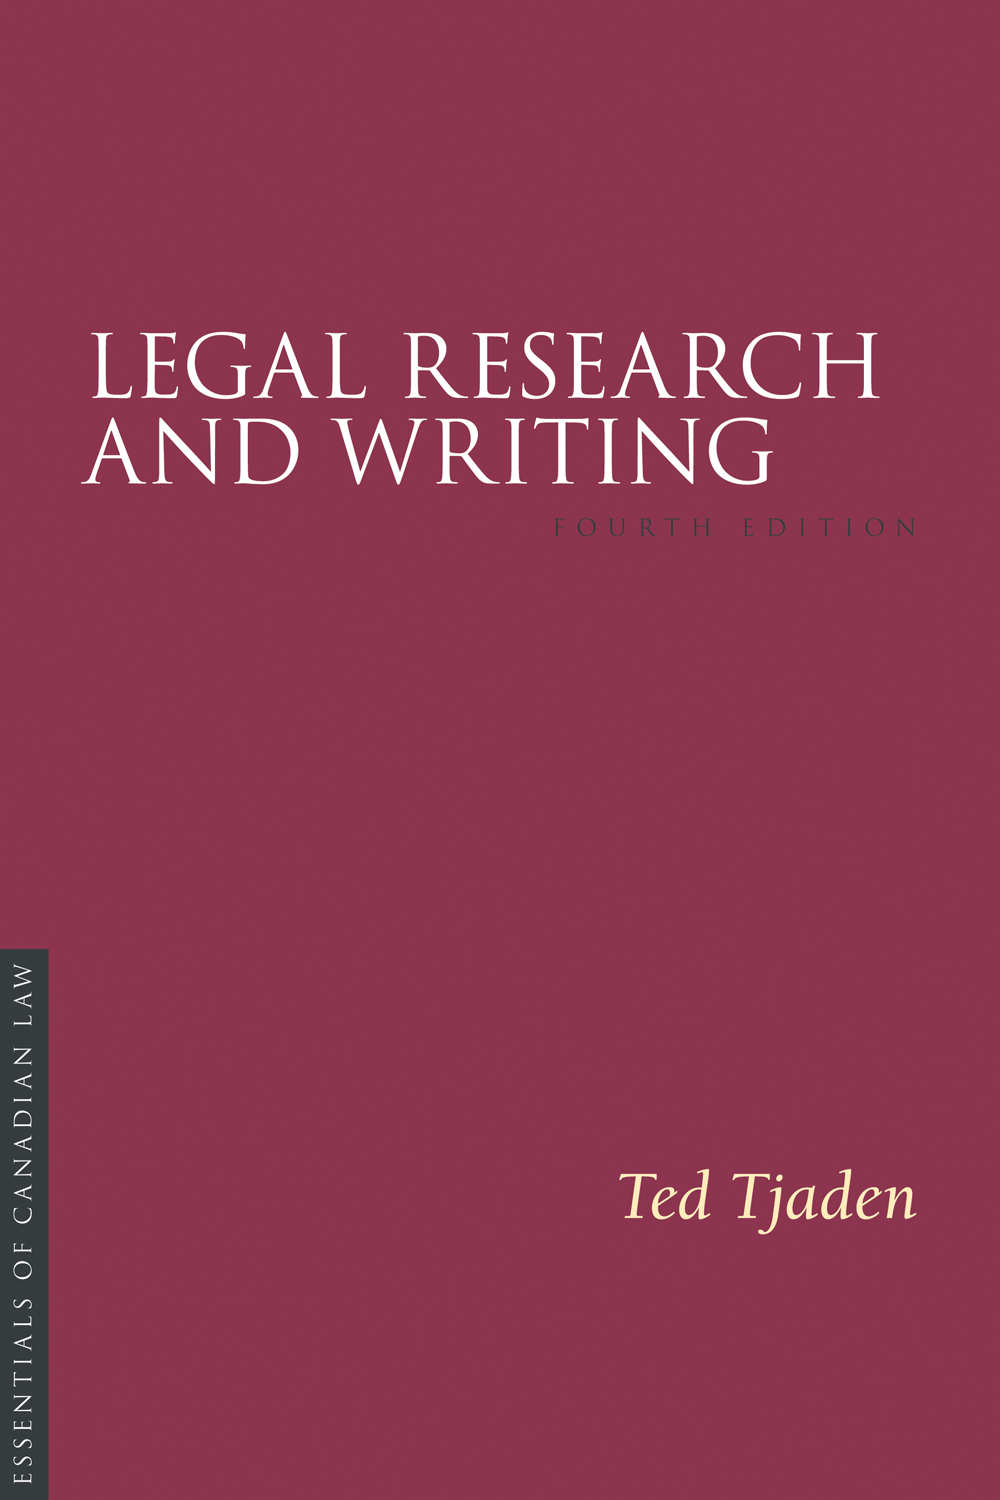 Book cover for Legal Research and Writing by Ted Tjaden. The cover is a solid burgundy colour with a simple type treatment in capital serif letters in white.